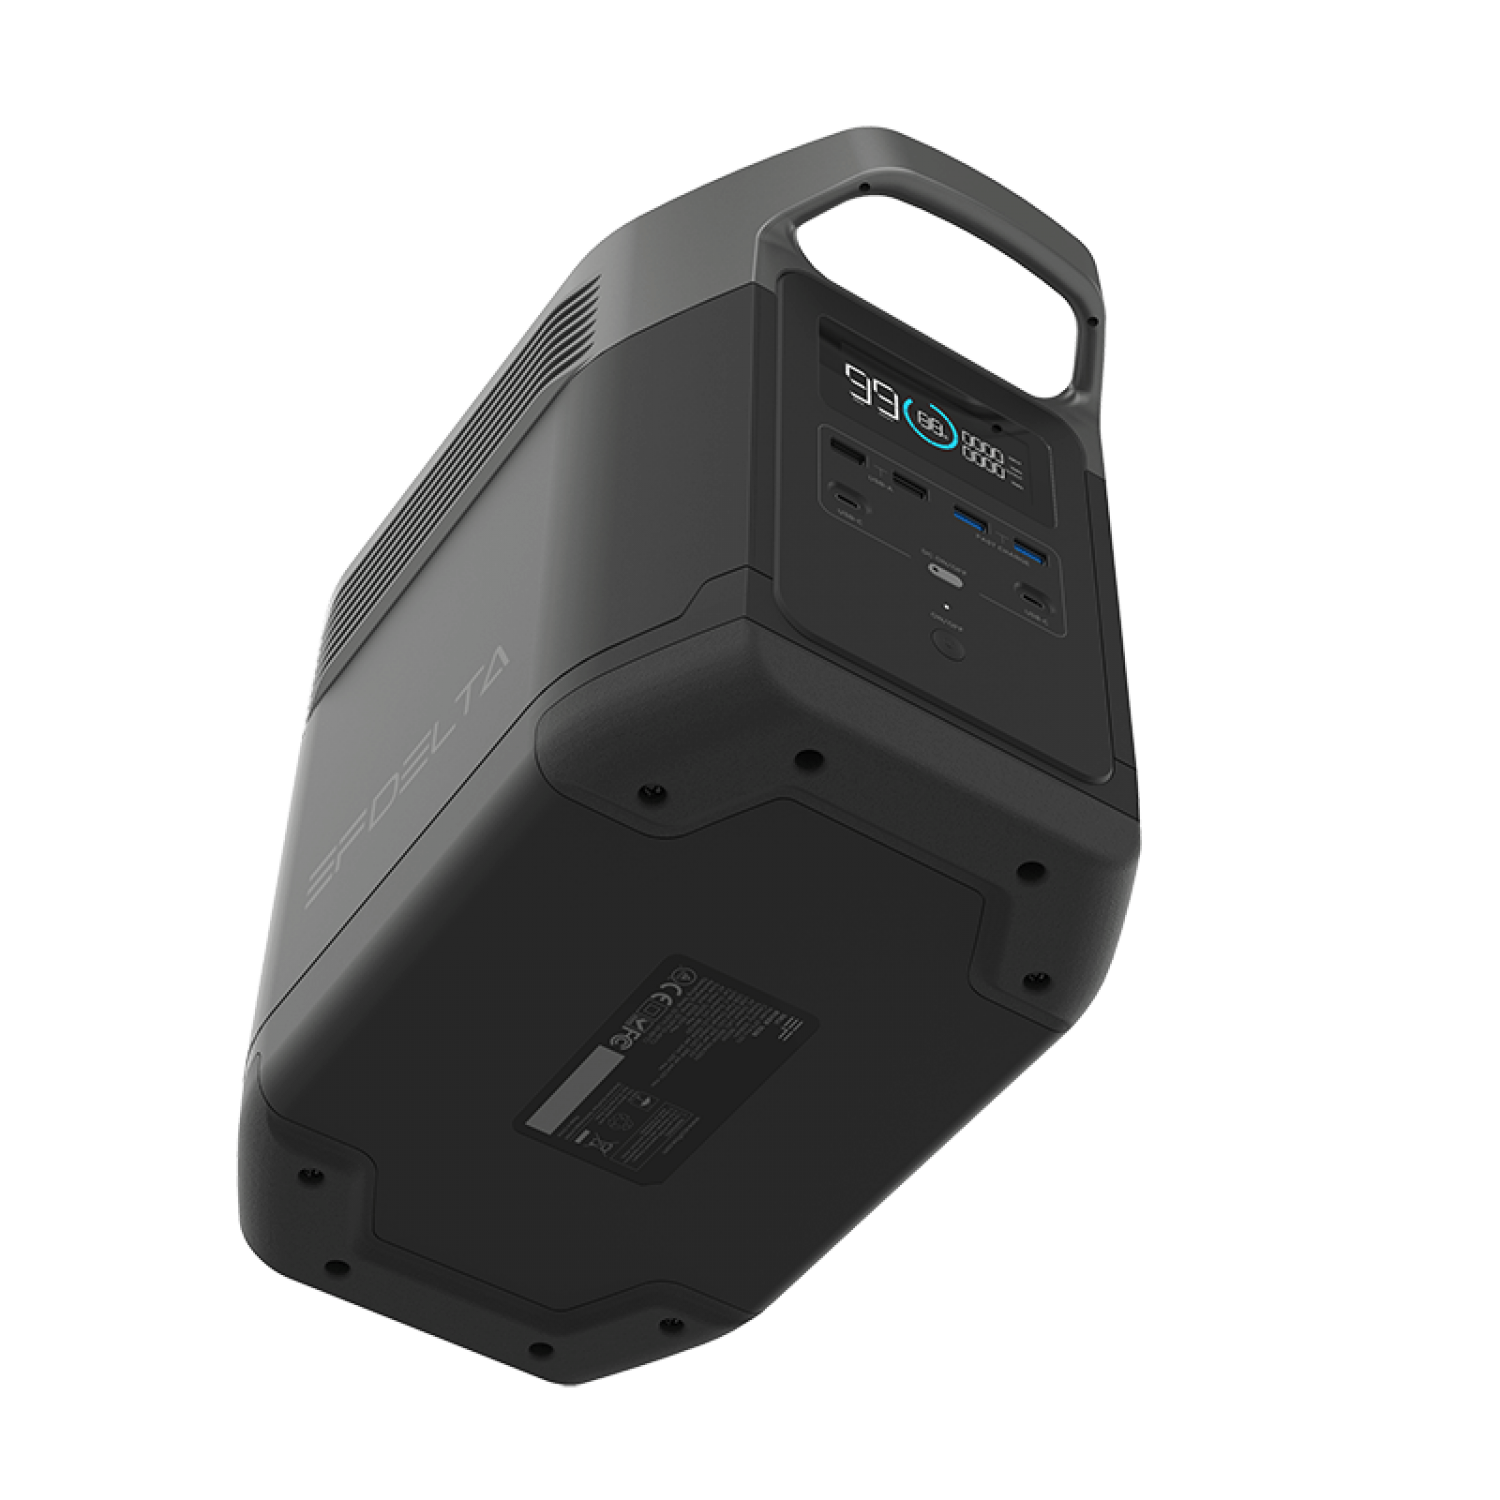 EcoFlow DELTA 1300 - Powerbank - EU Version